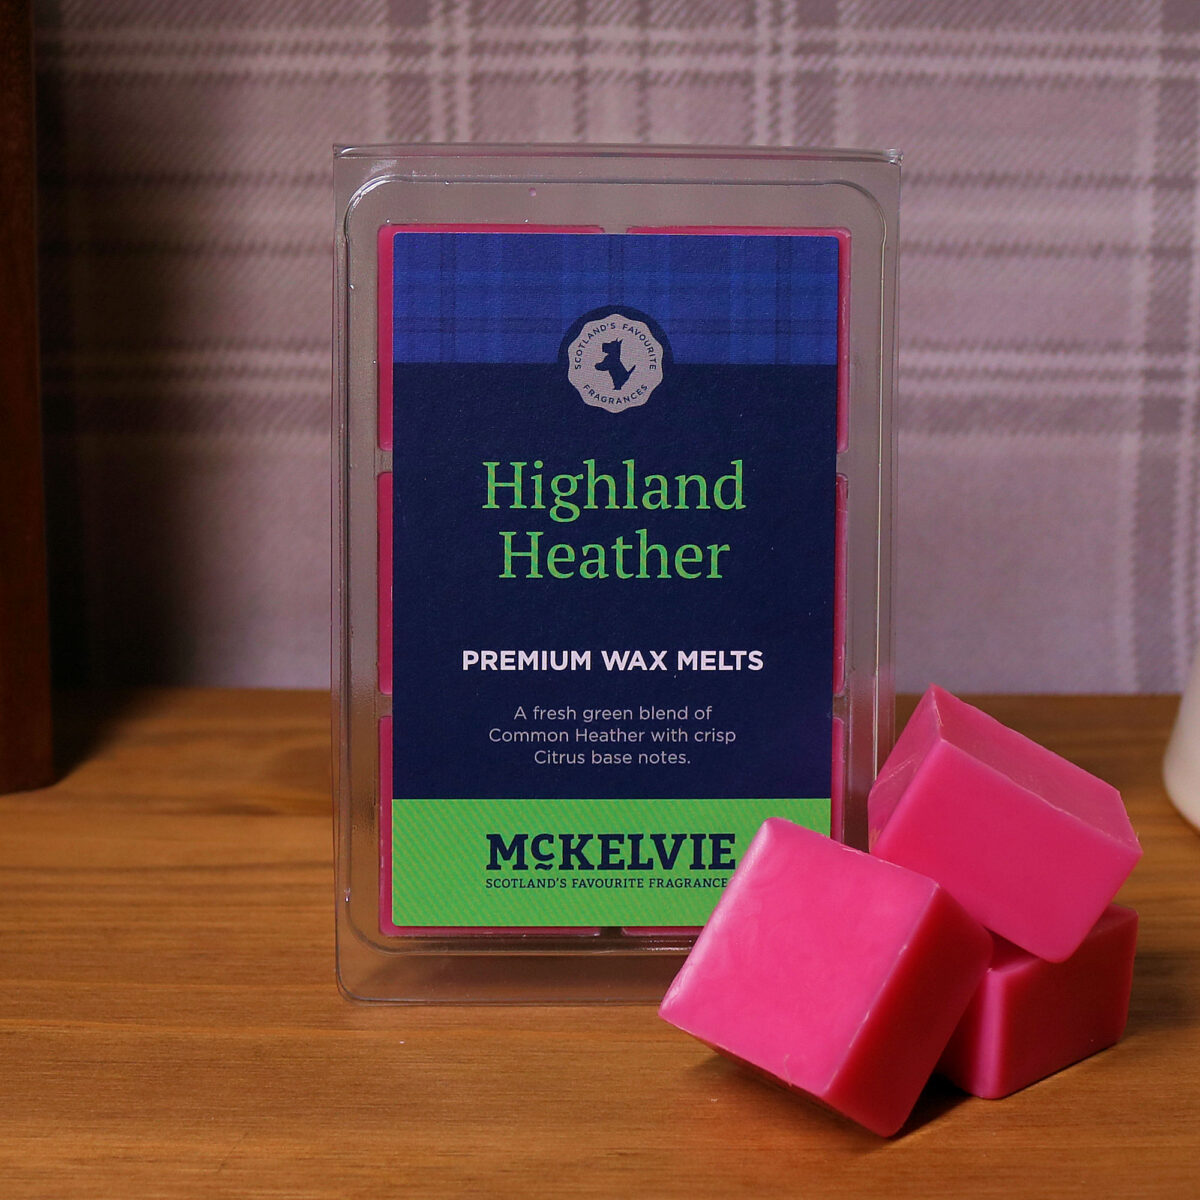 Highland Heather Wax Melts